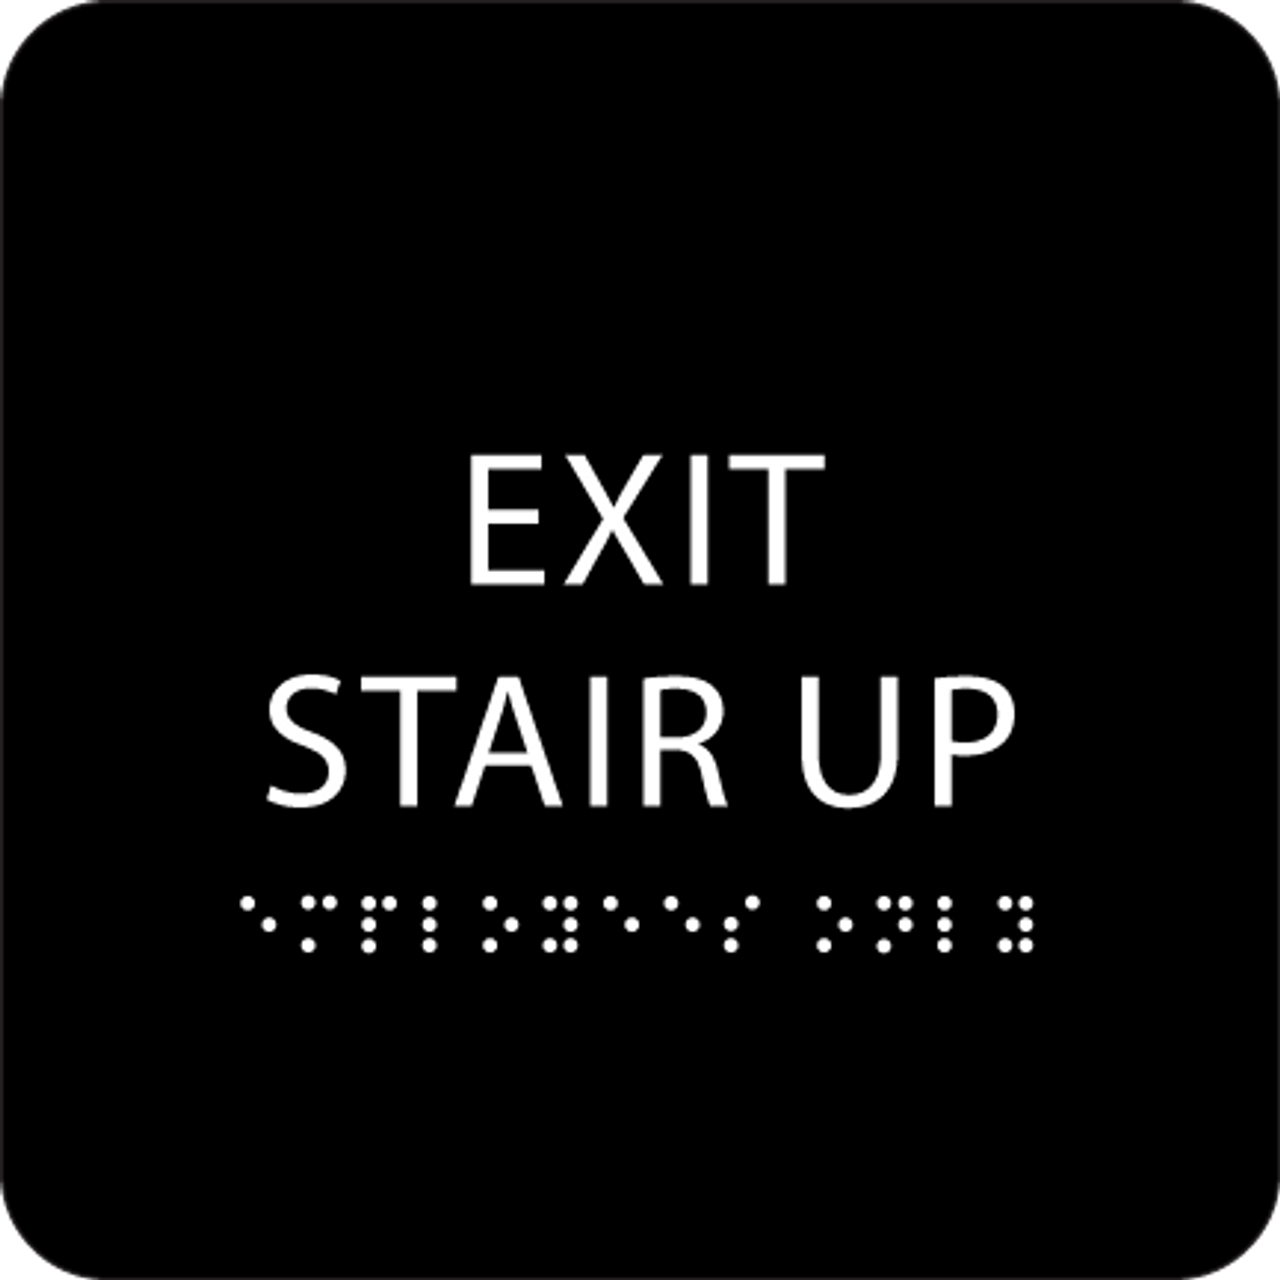 Black Exit Stair Up ADA Sign